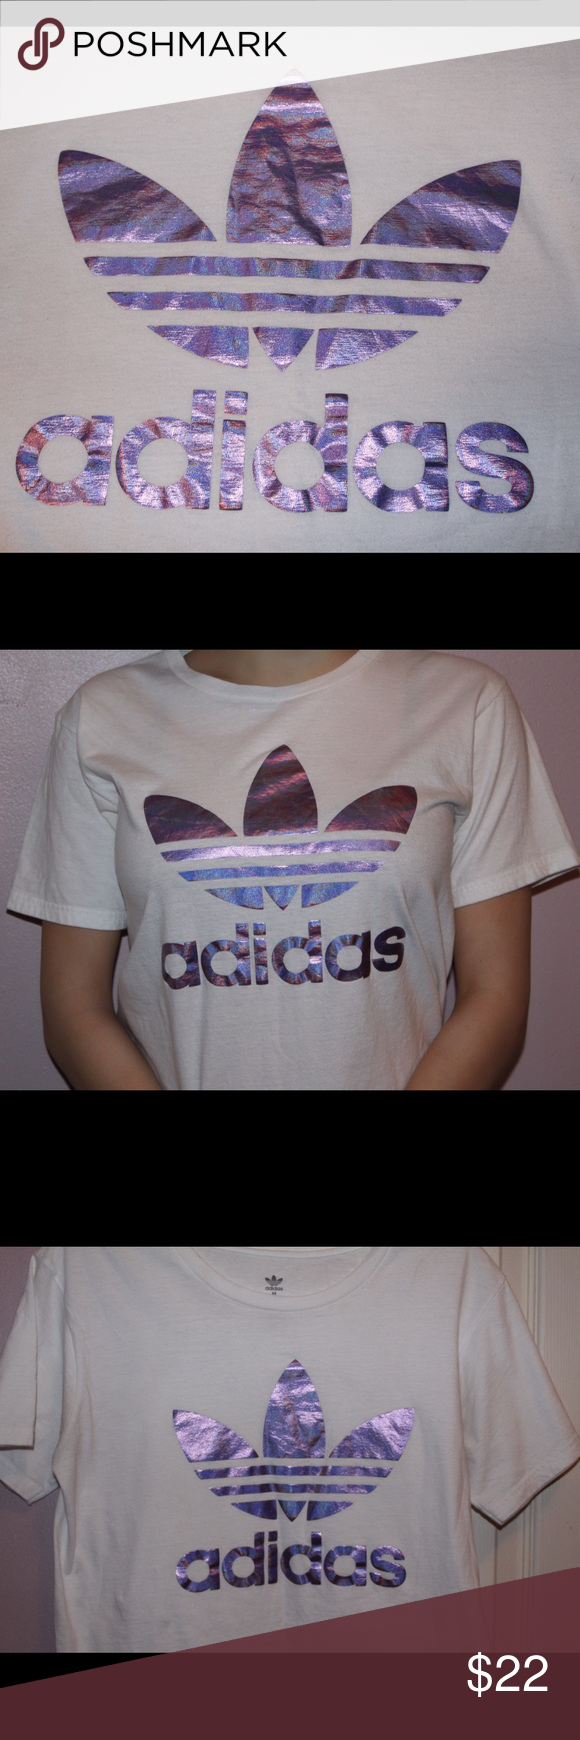 Adidas Originals Tee Shirt Only wore this about 1-2 times. In good condition, almost like new. Please contact me with questions or if you're interested. 👾💜 Adidas Tops Tees - Short Sleeve